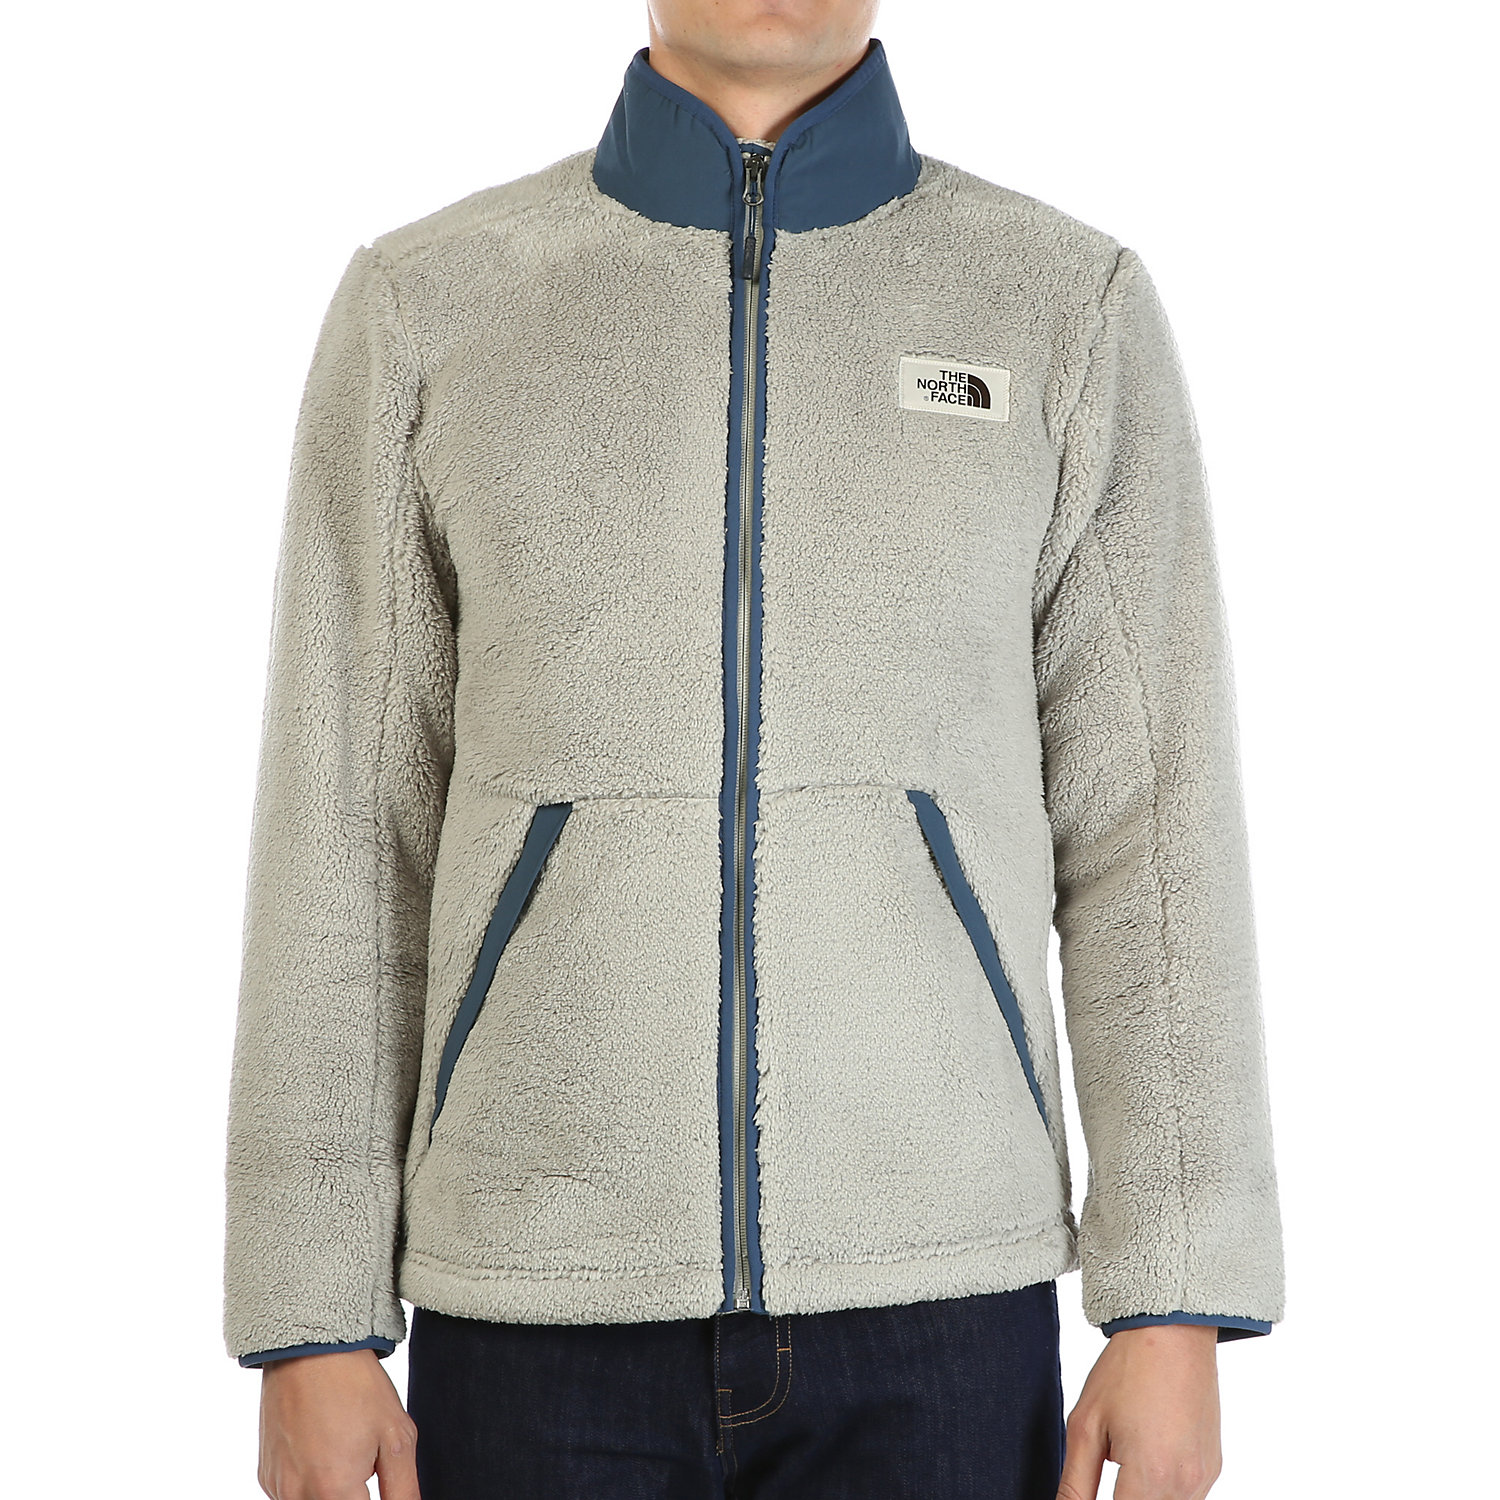 f9612d8ae79 The North Face Men s Campshire Full Zip Jacket - Moosejaw